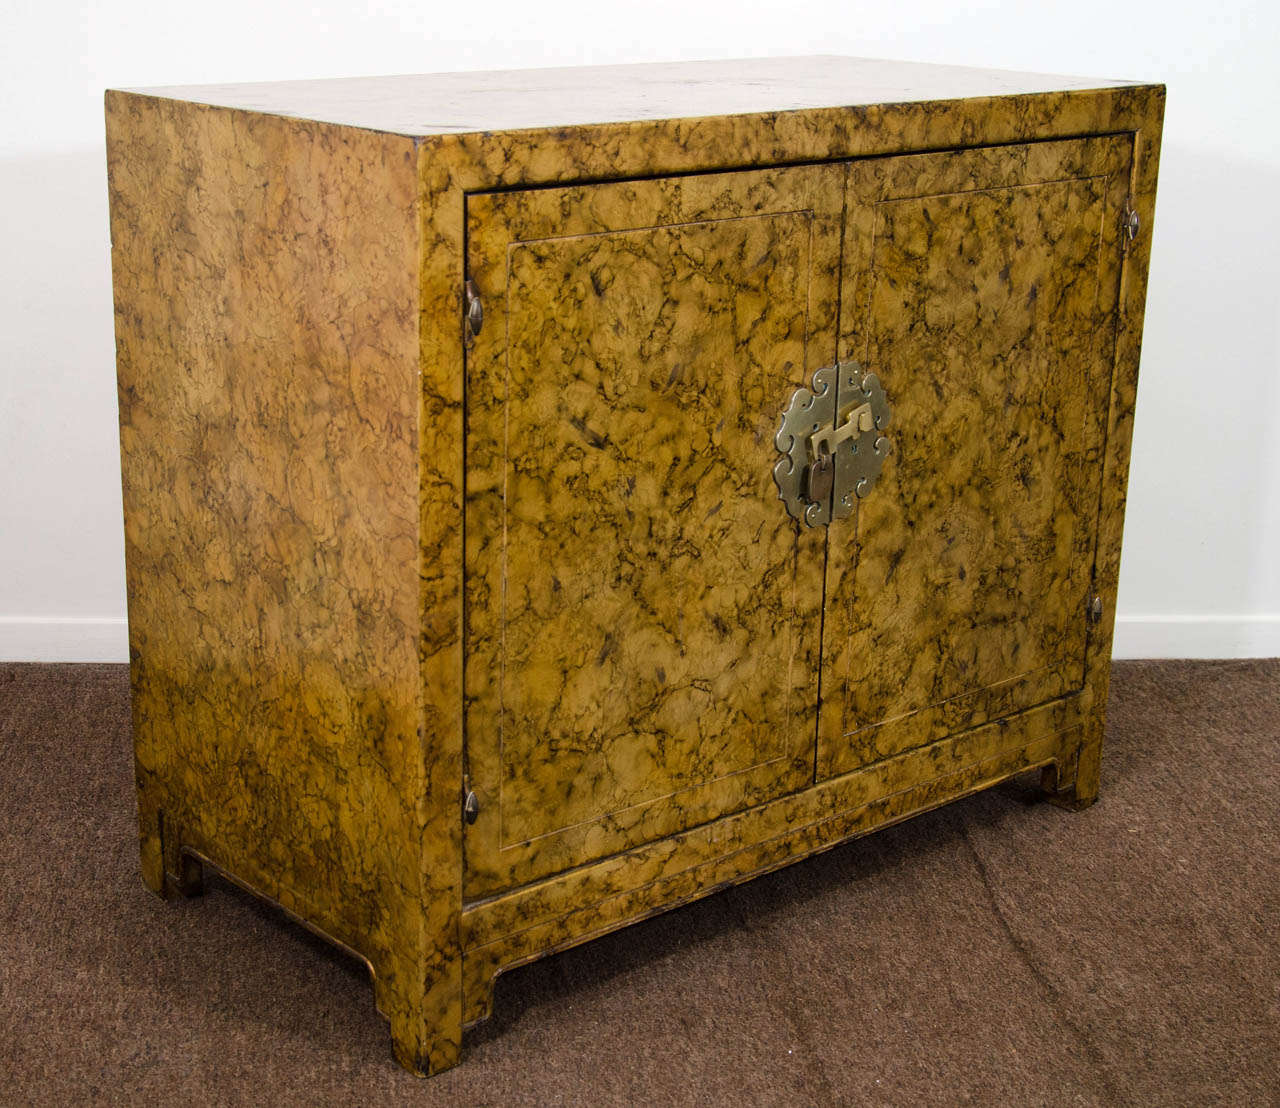 A vintage Asian-inspired two door cabinet with brass detailing and Faux tortoise finish.   Vintage condition with some wear around the edges.  There are some nicks and scratches along with small cracks to the surface.